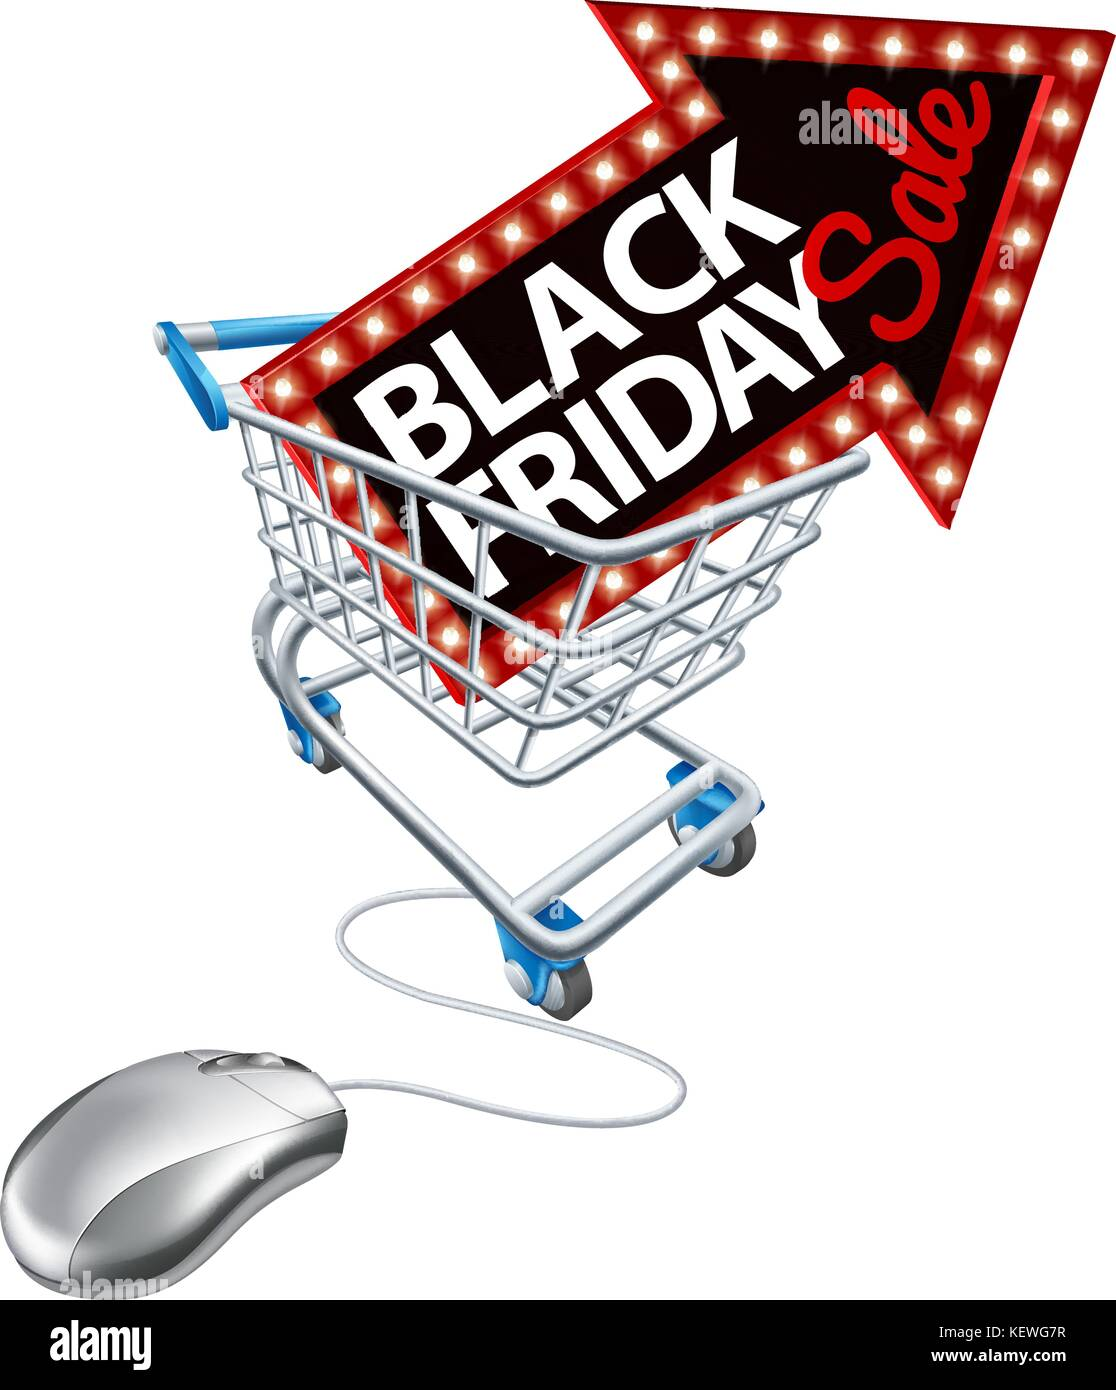 Black Friday Sale Online Shopping Trolley Mouse Stock Vector Art ...